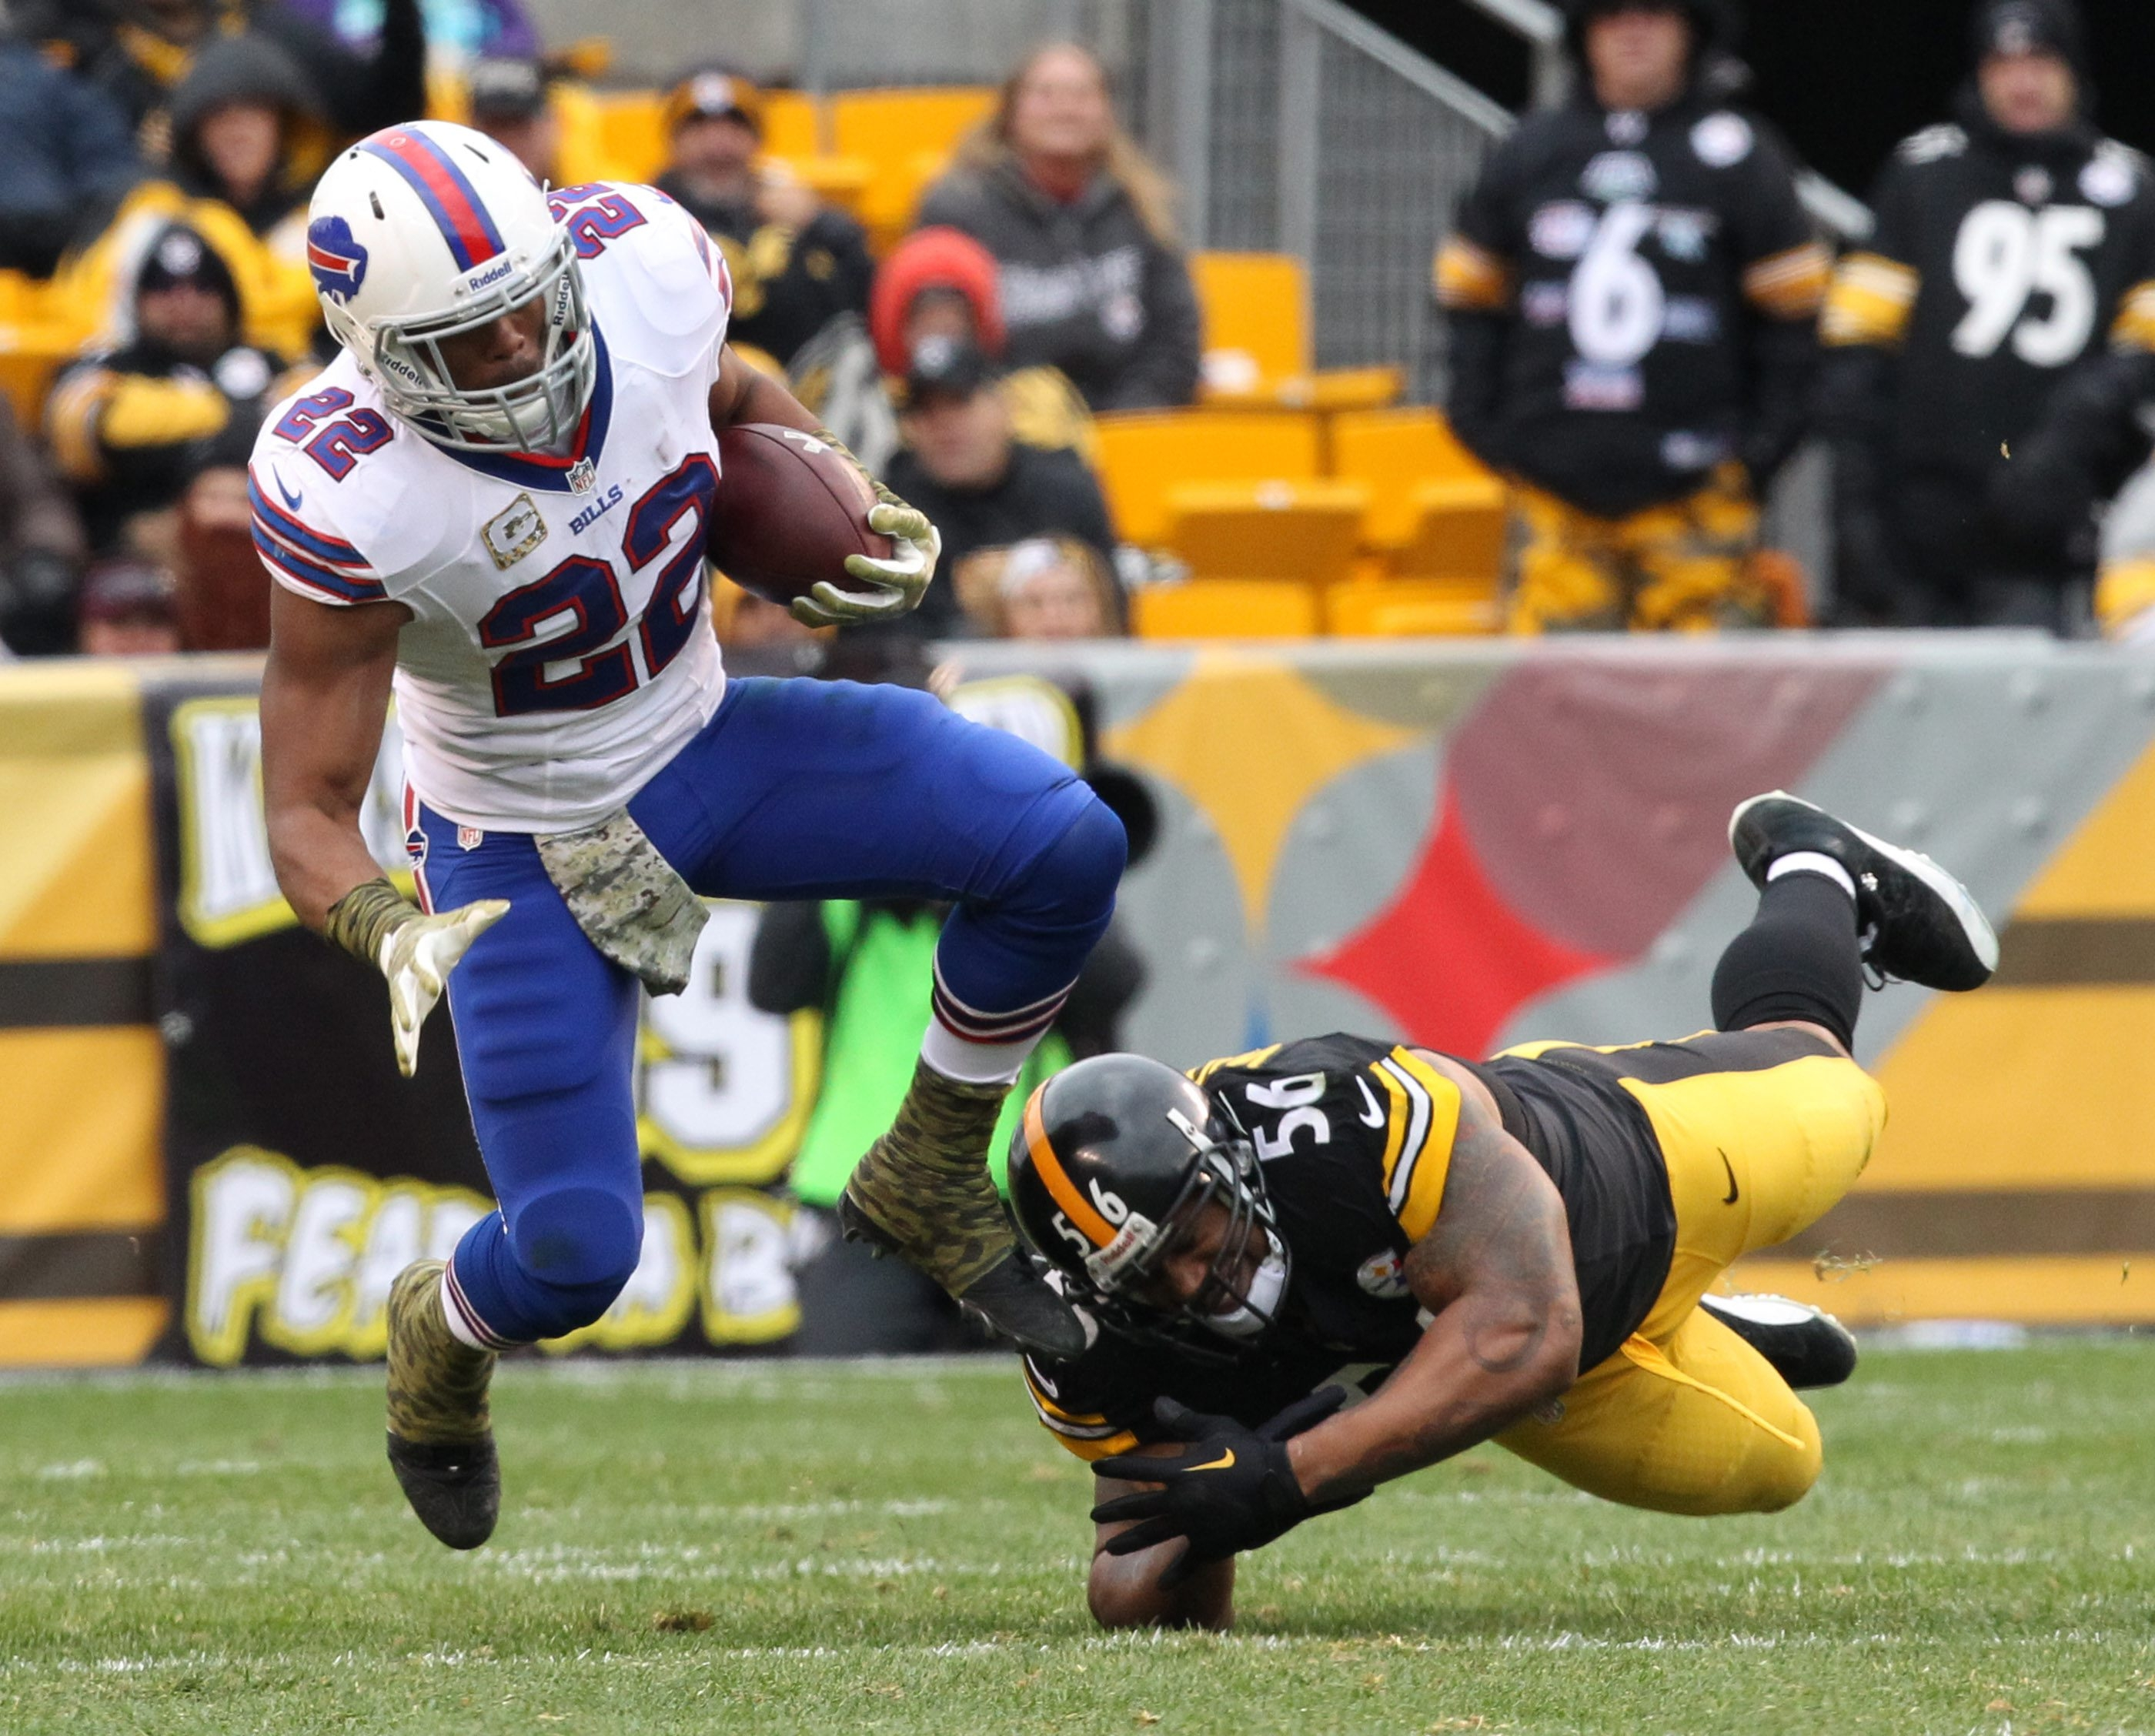 Buffalo Bills running back Fred Jackson (22) is tackled by Pittsburgh Steelers outside linebacker LaMarr Woodley (56) in the first quarter at Heinz Field on Sunday, Nov. 10, 2013.  {Photo by James P. McCoy / Buffalo News}